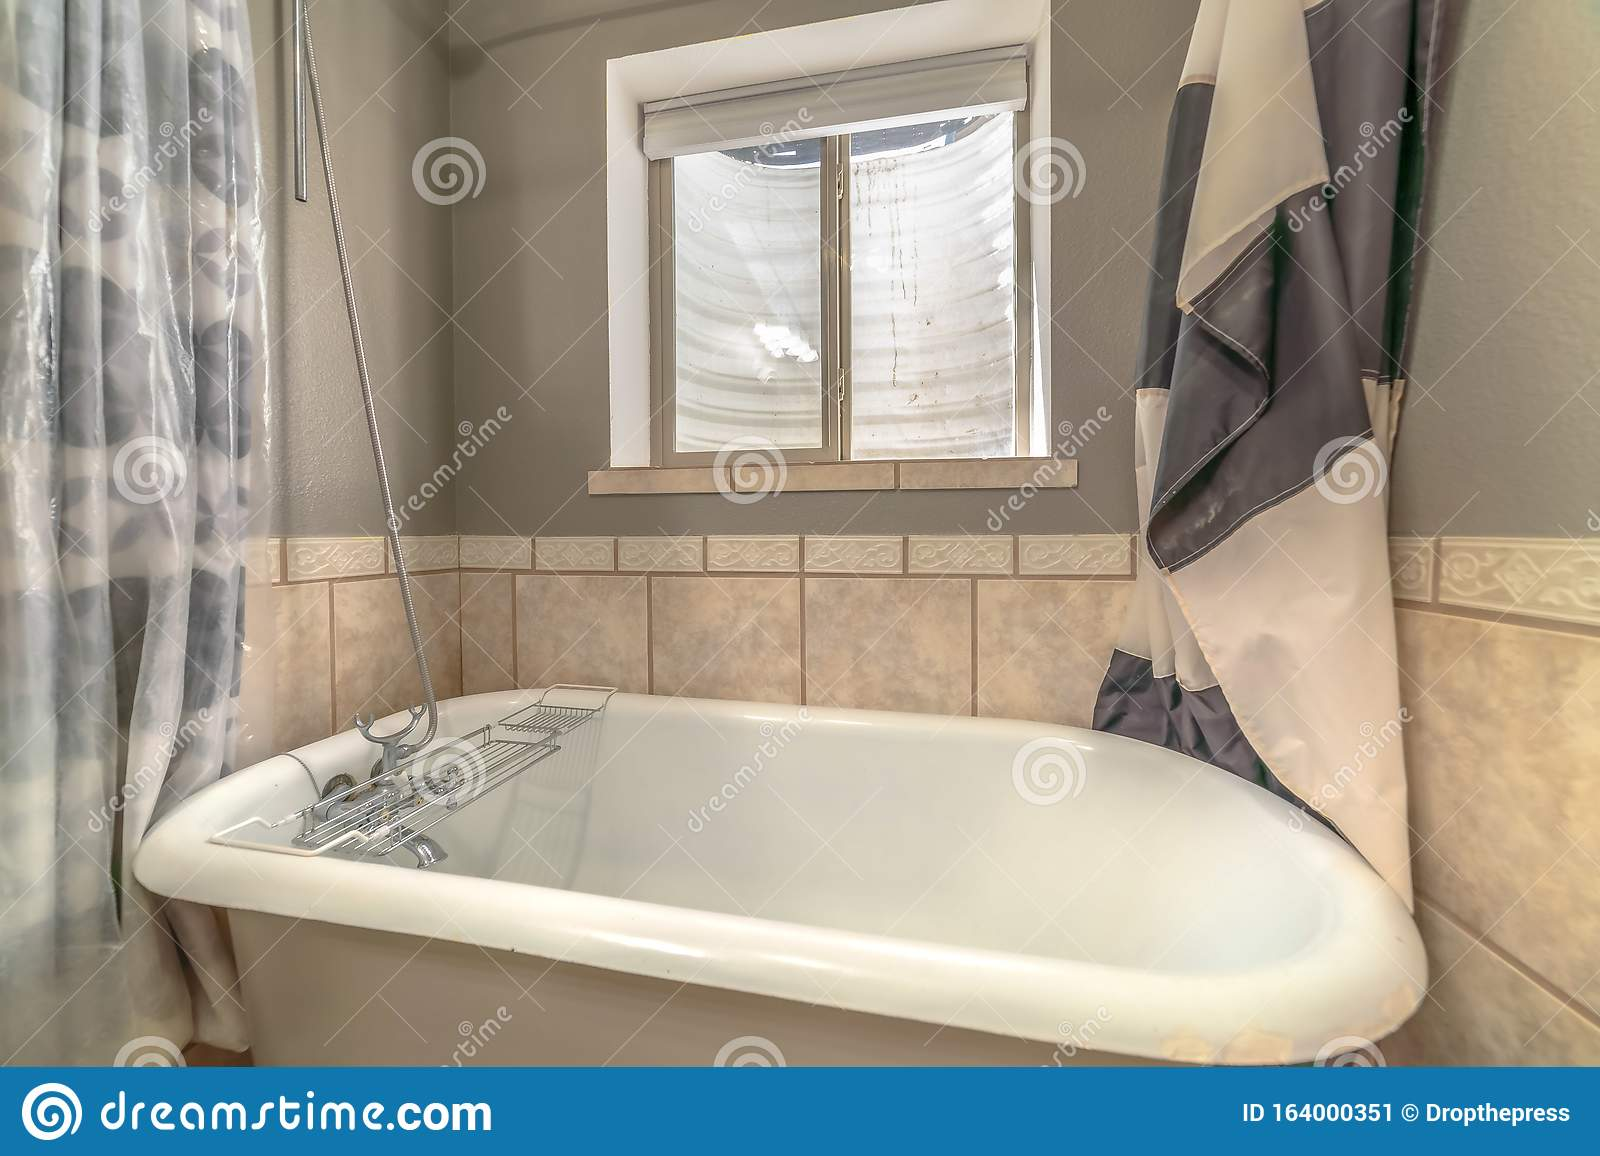 Close Up Of A Bathtub In Side A Bathroom With Shower Curtains And Window Stock Image Image Of Tile Details 164000351